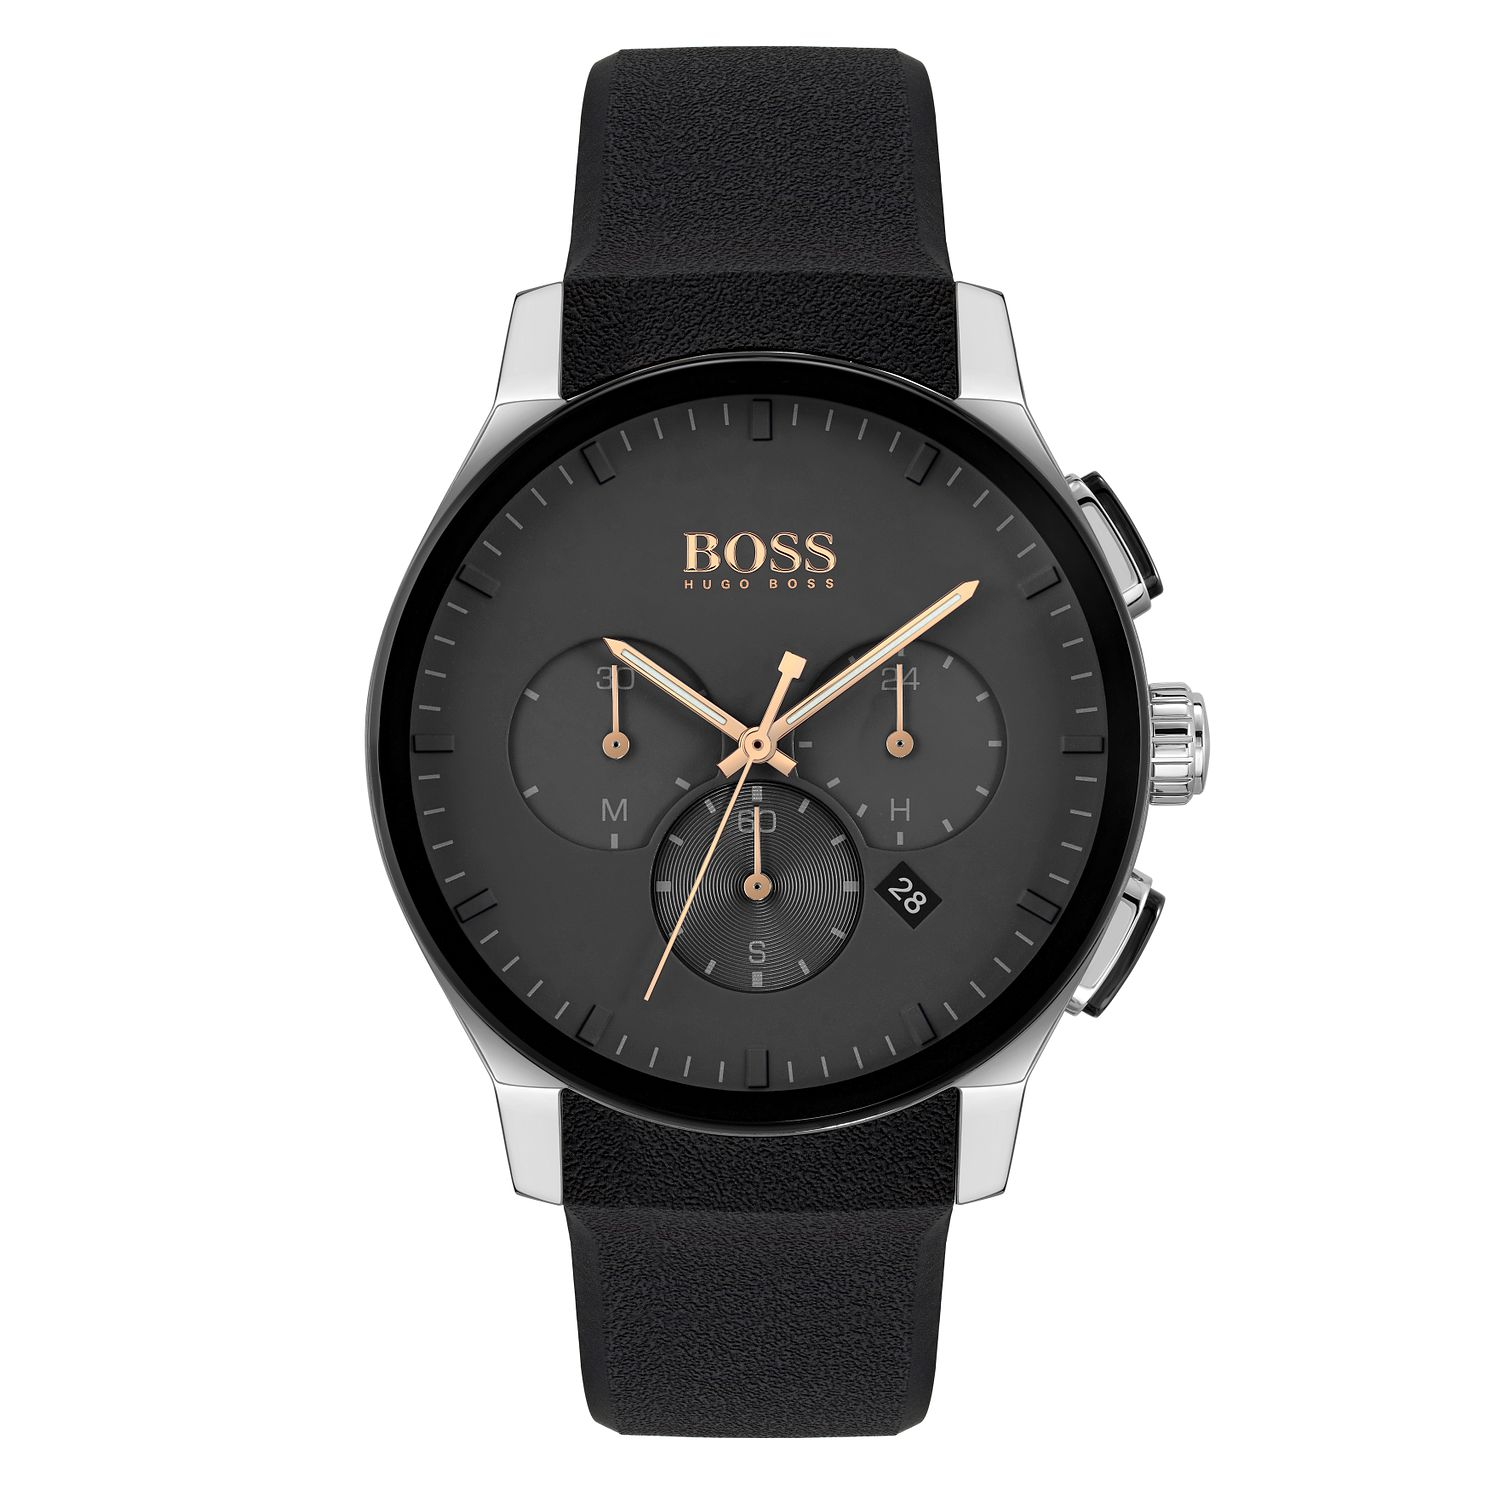 BOSS Peak Chronograph Men's Black Rubber Strap Watch - Product number 4654129